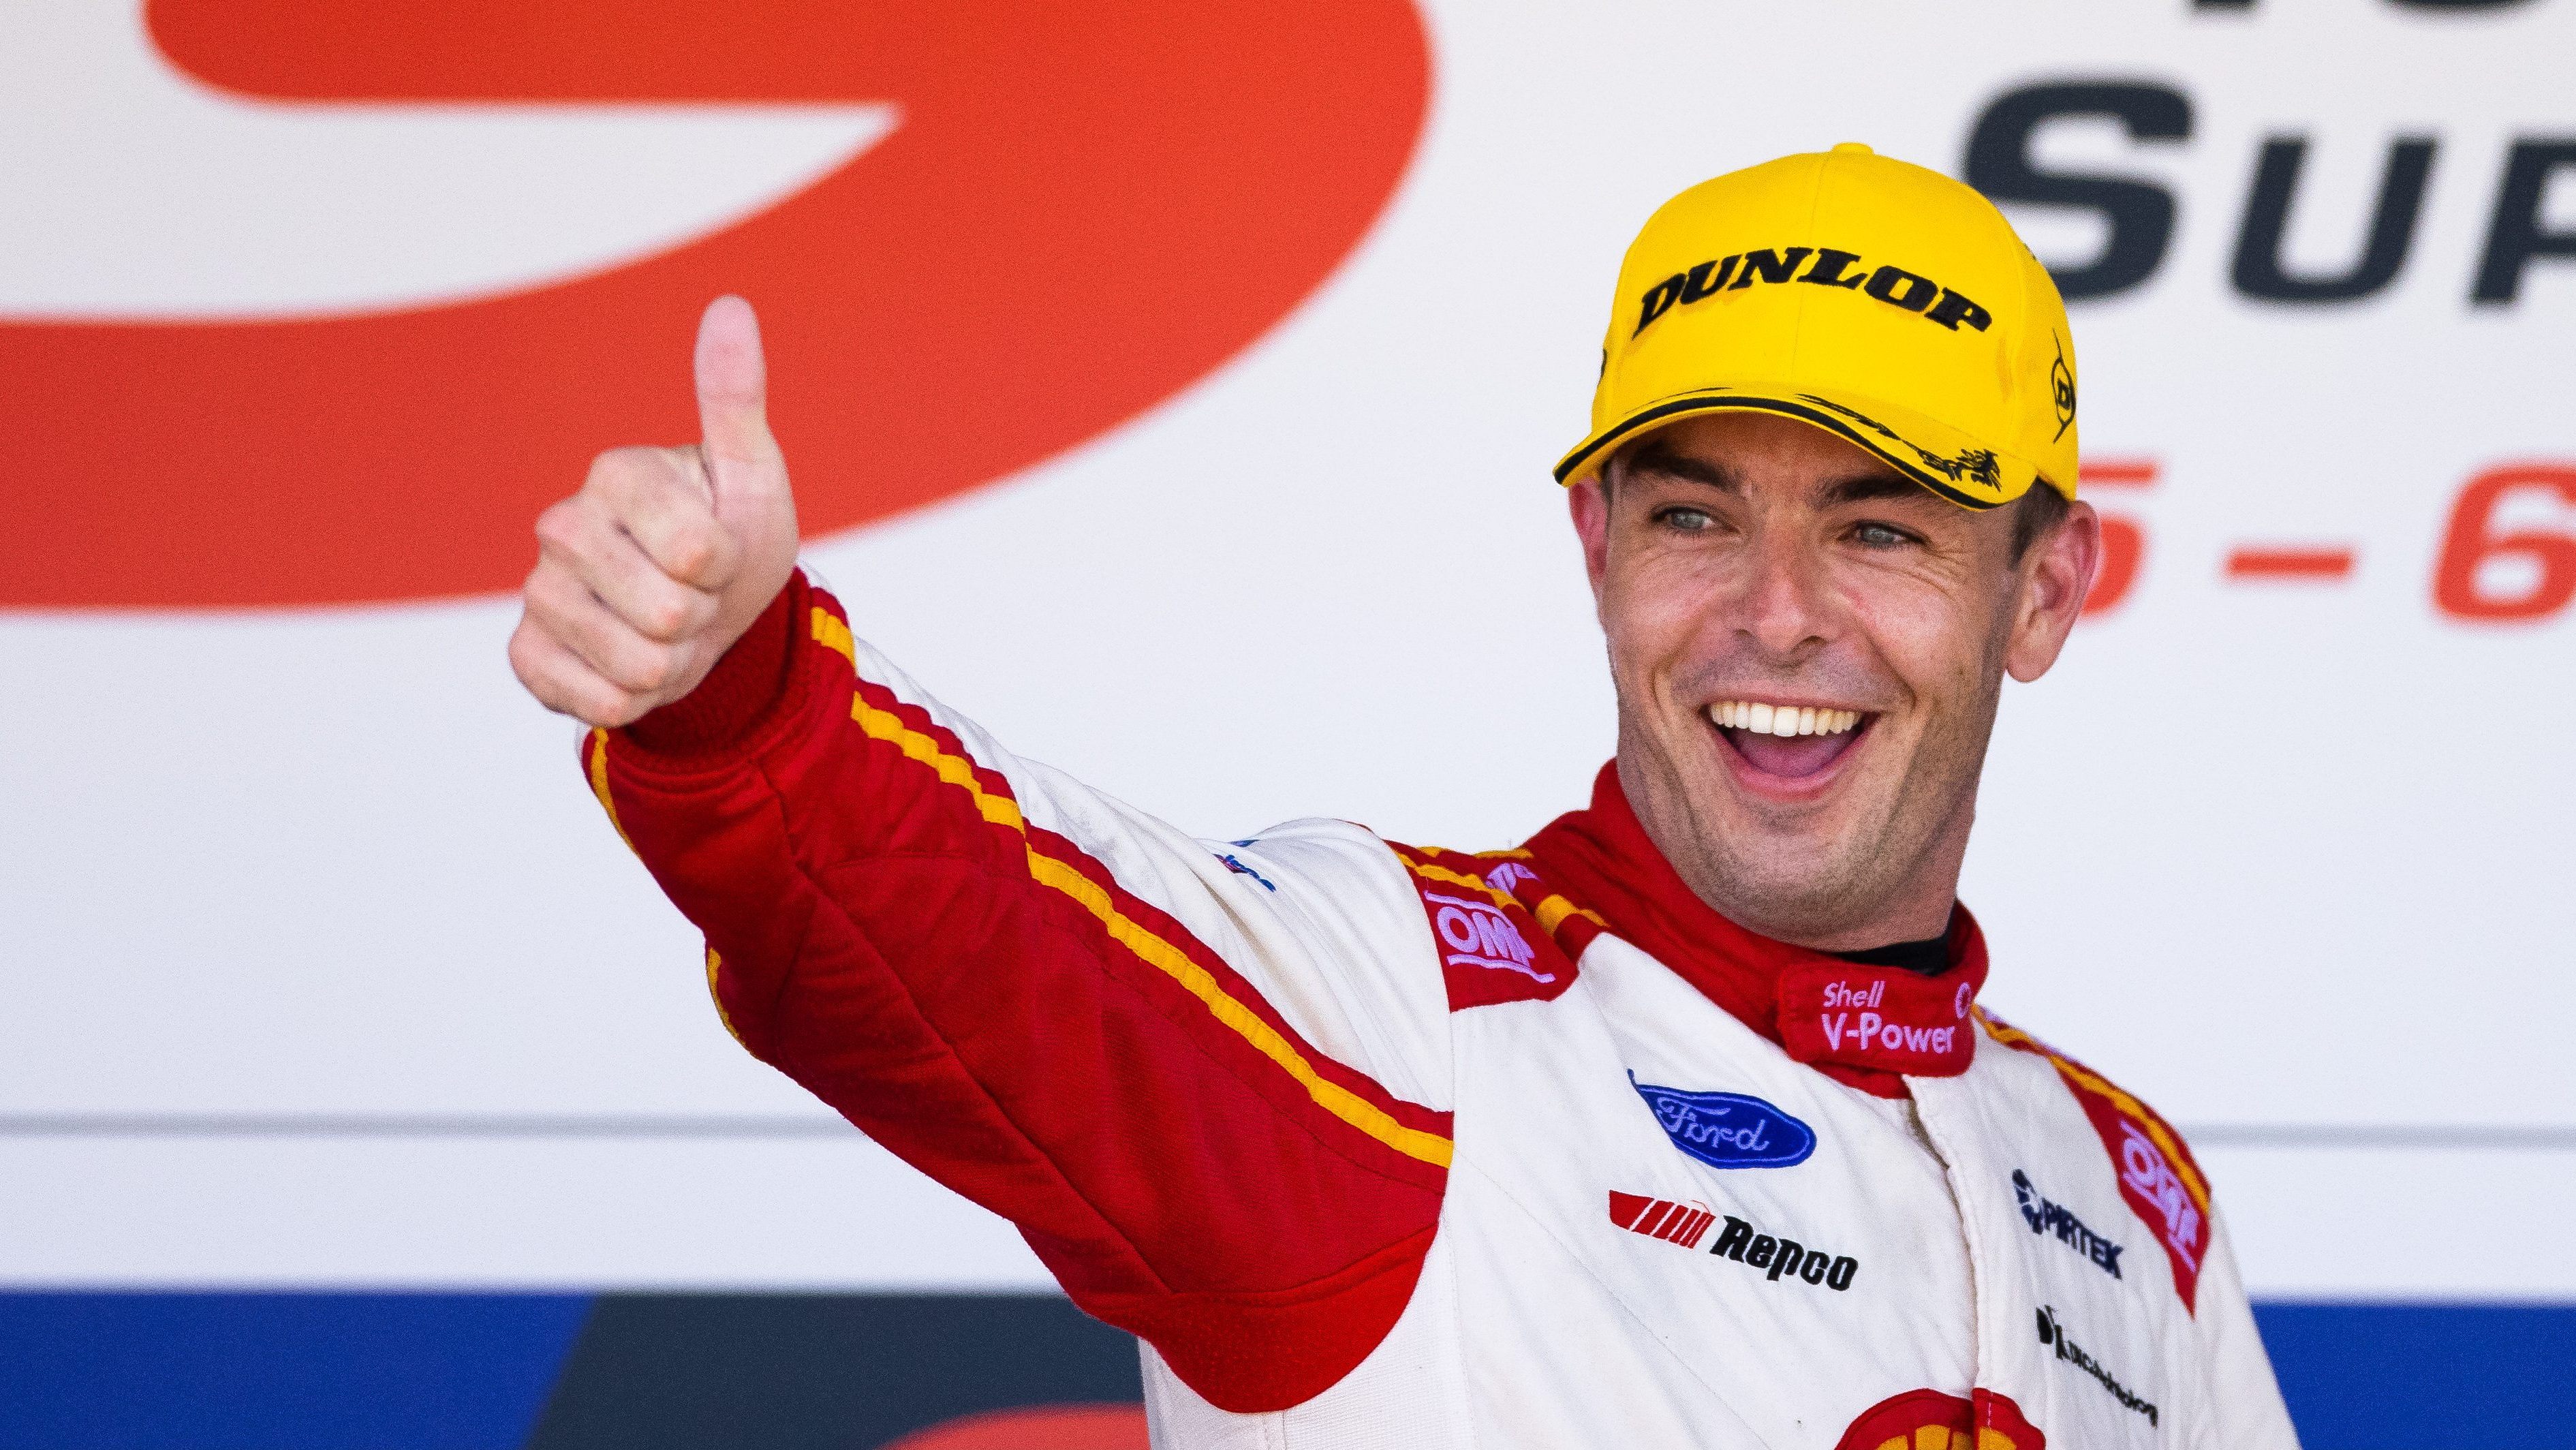 Scott McLaughlin will make IndyCar debut for Team Penske at St. Pete